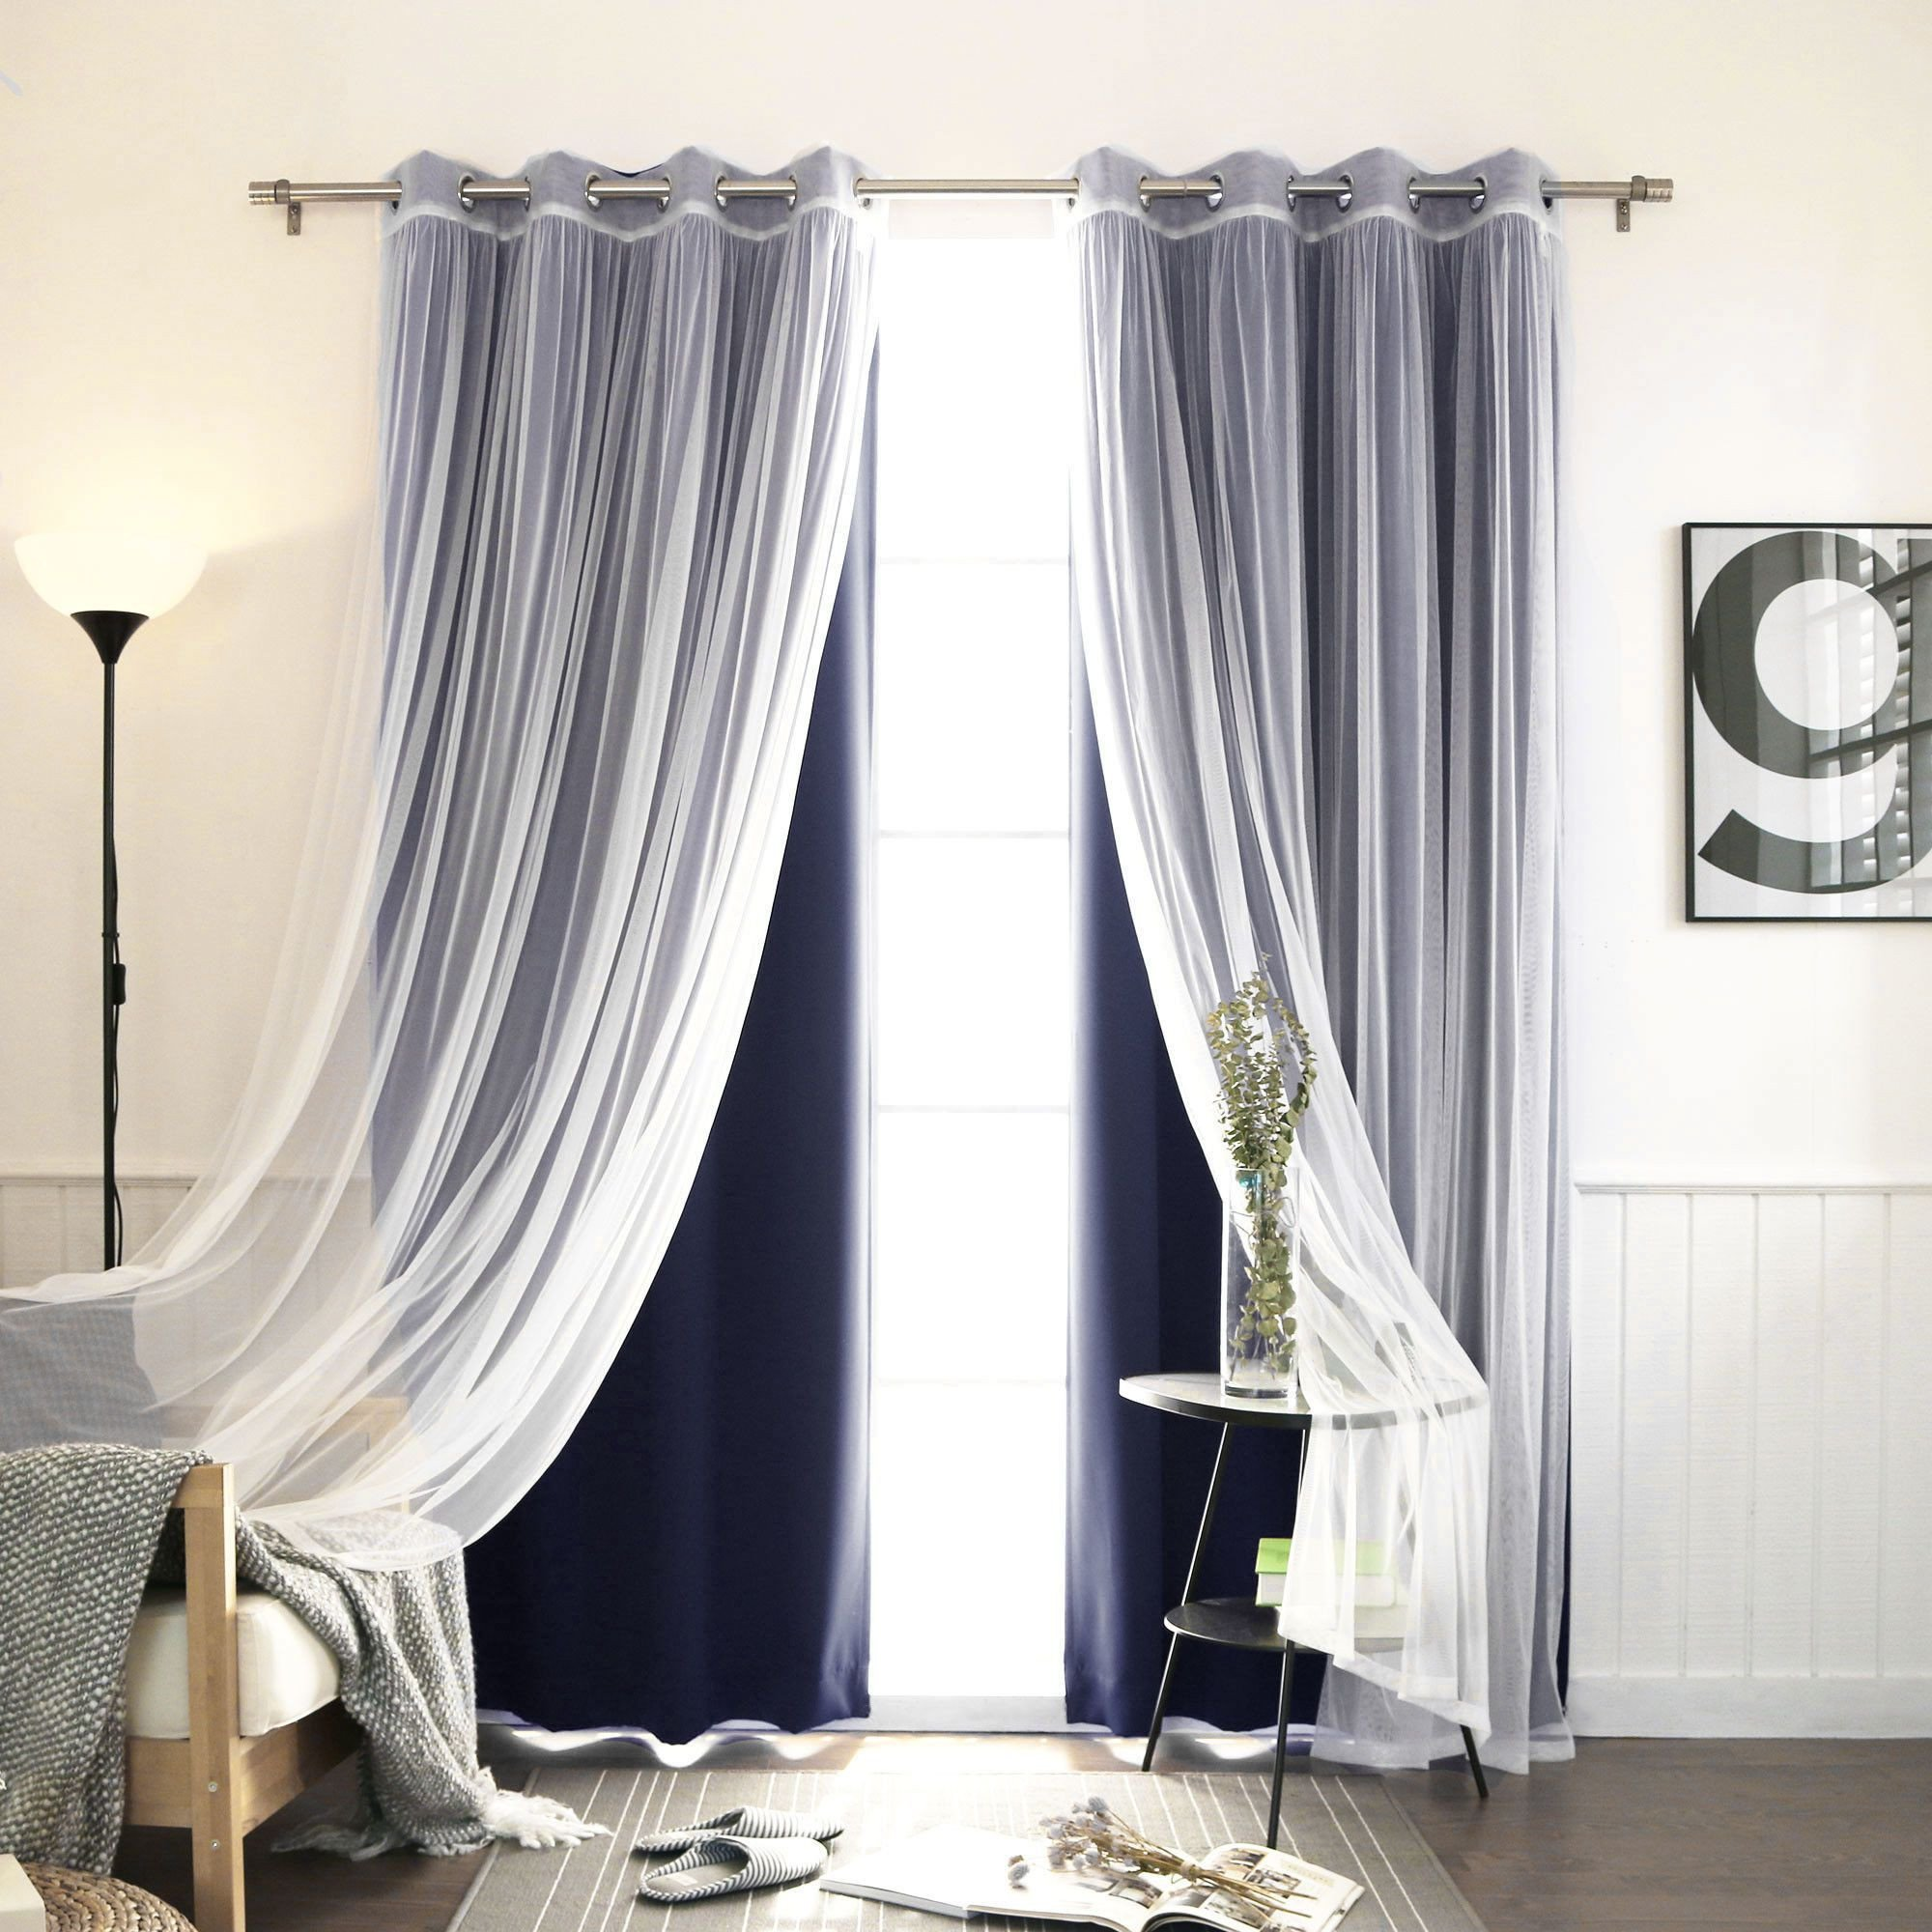 Black and White Bedroom Curtains Luxury solid Blackout thermal Grommet Curtain Panels Set Of 2